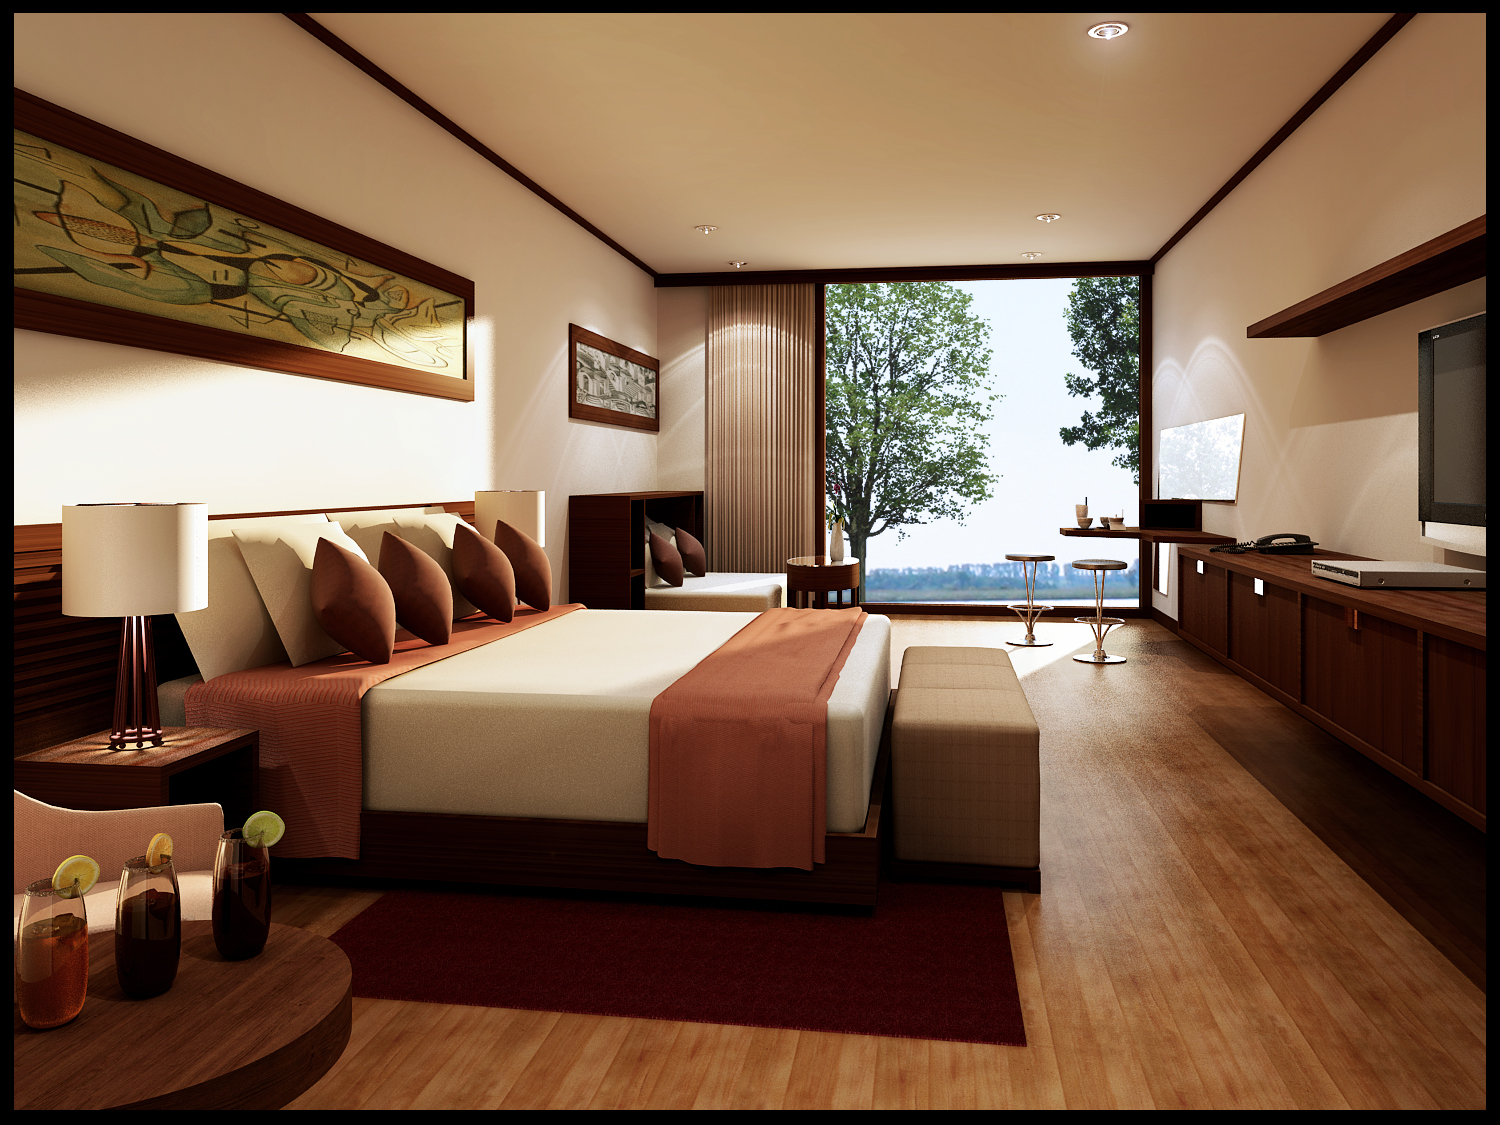 Bedroom Decorating Ideas Vastu vastu tips for your bedroom